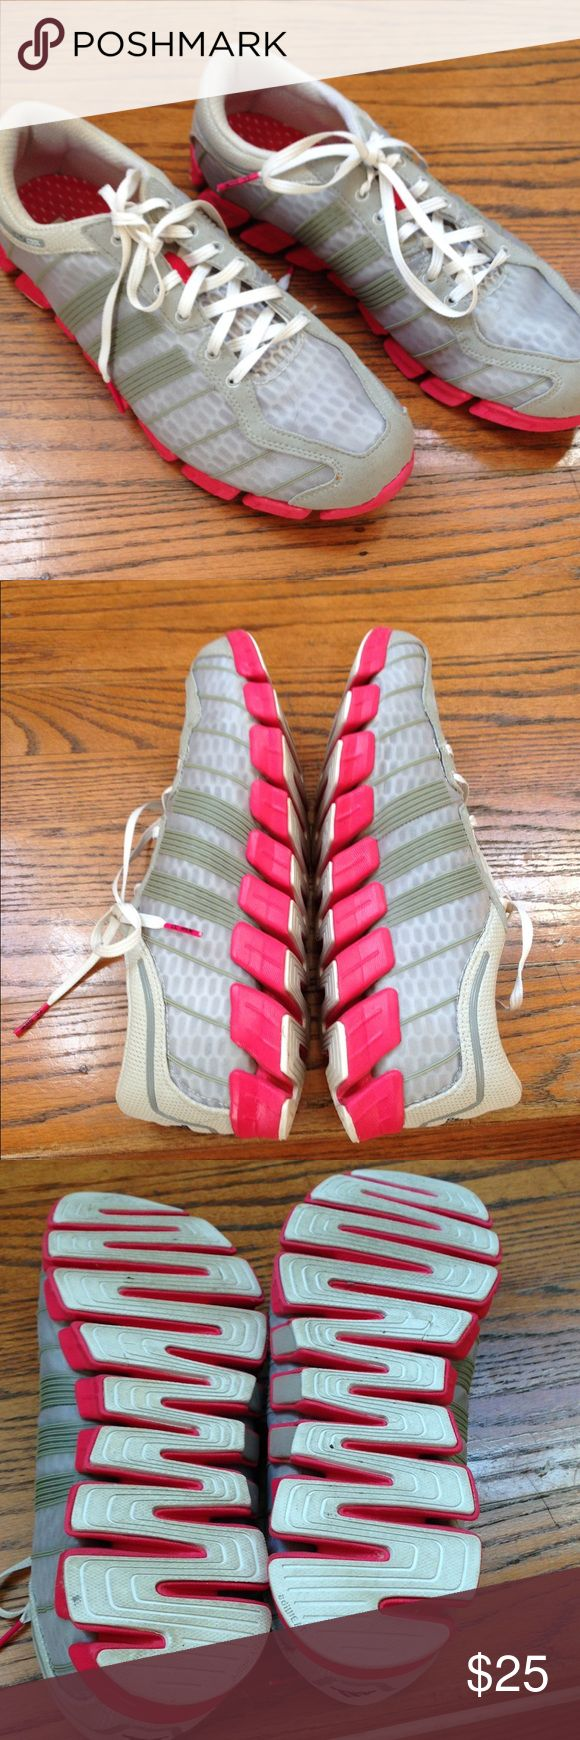 Clima cool running shoes by adidas size 10 Worn once and in perfect used condition running shoes by adidas. Size 10. Grey with hot pink bottom. adidas clima cool Shoes Athletic Shoes